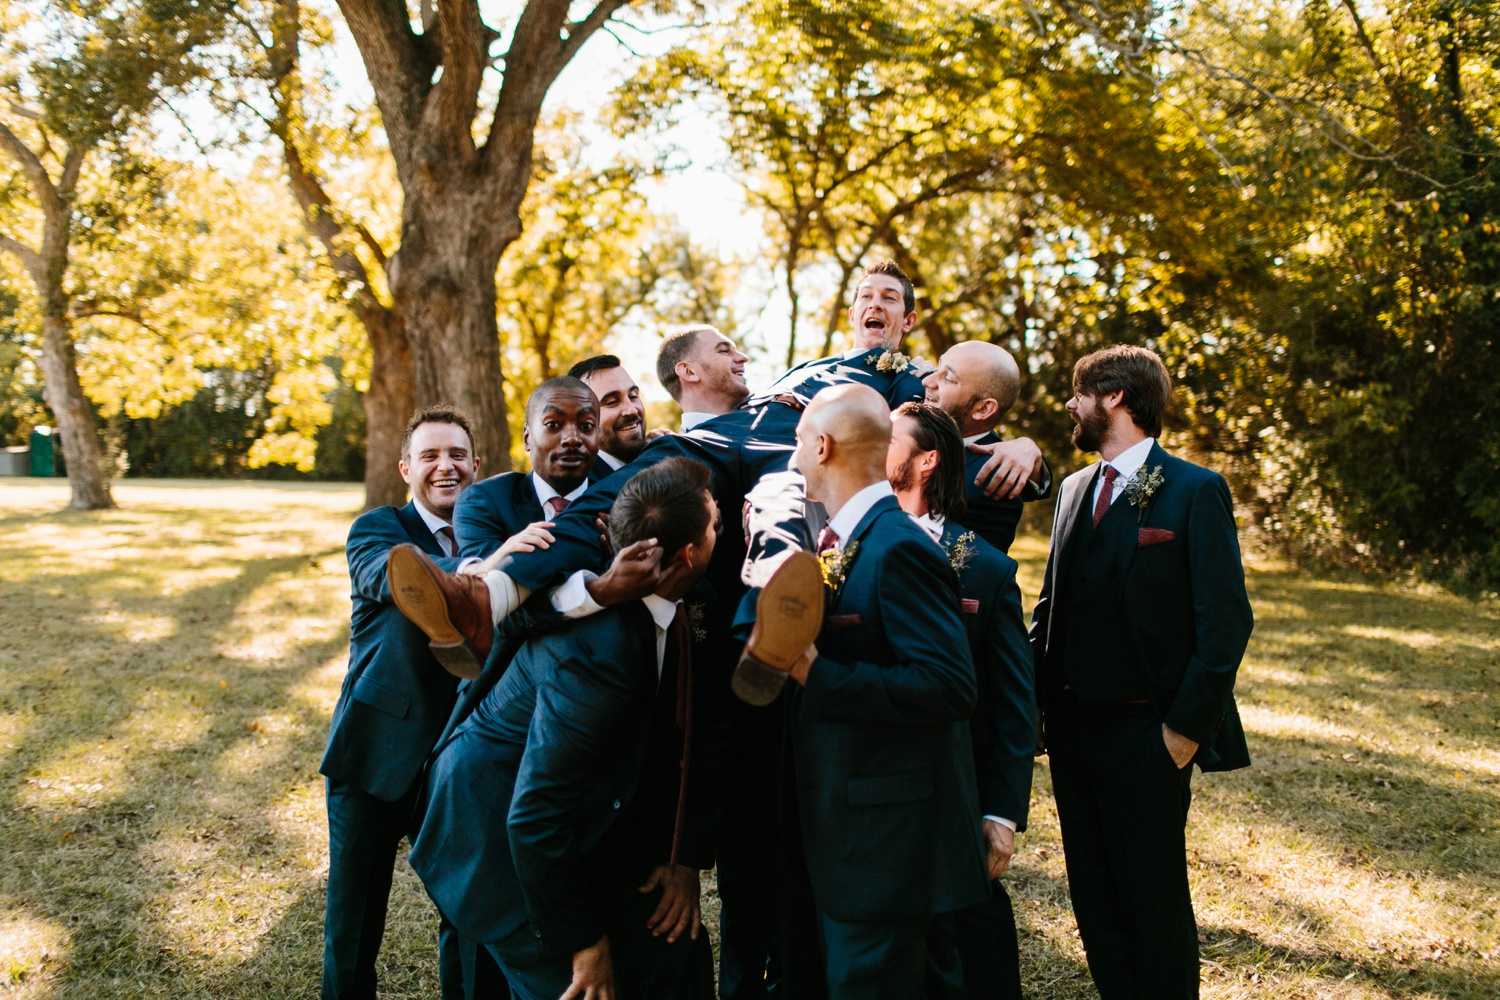 Erica + Henry | a bohemian inspired wedding at Chandlers Gardens in Salina, TX by North Texas Wedding Photographer Rachel Meagan Photography 048